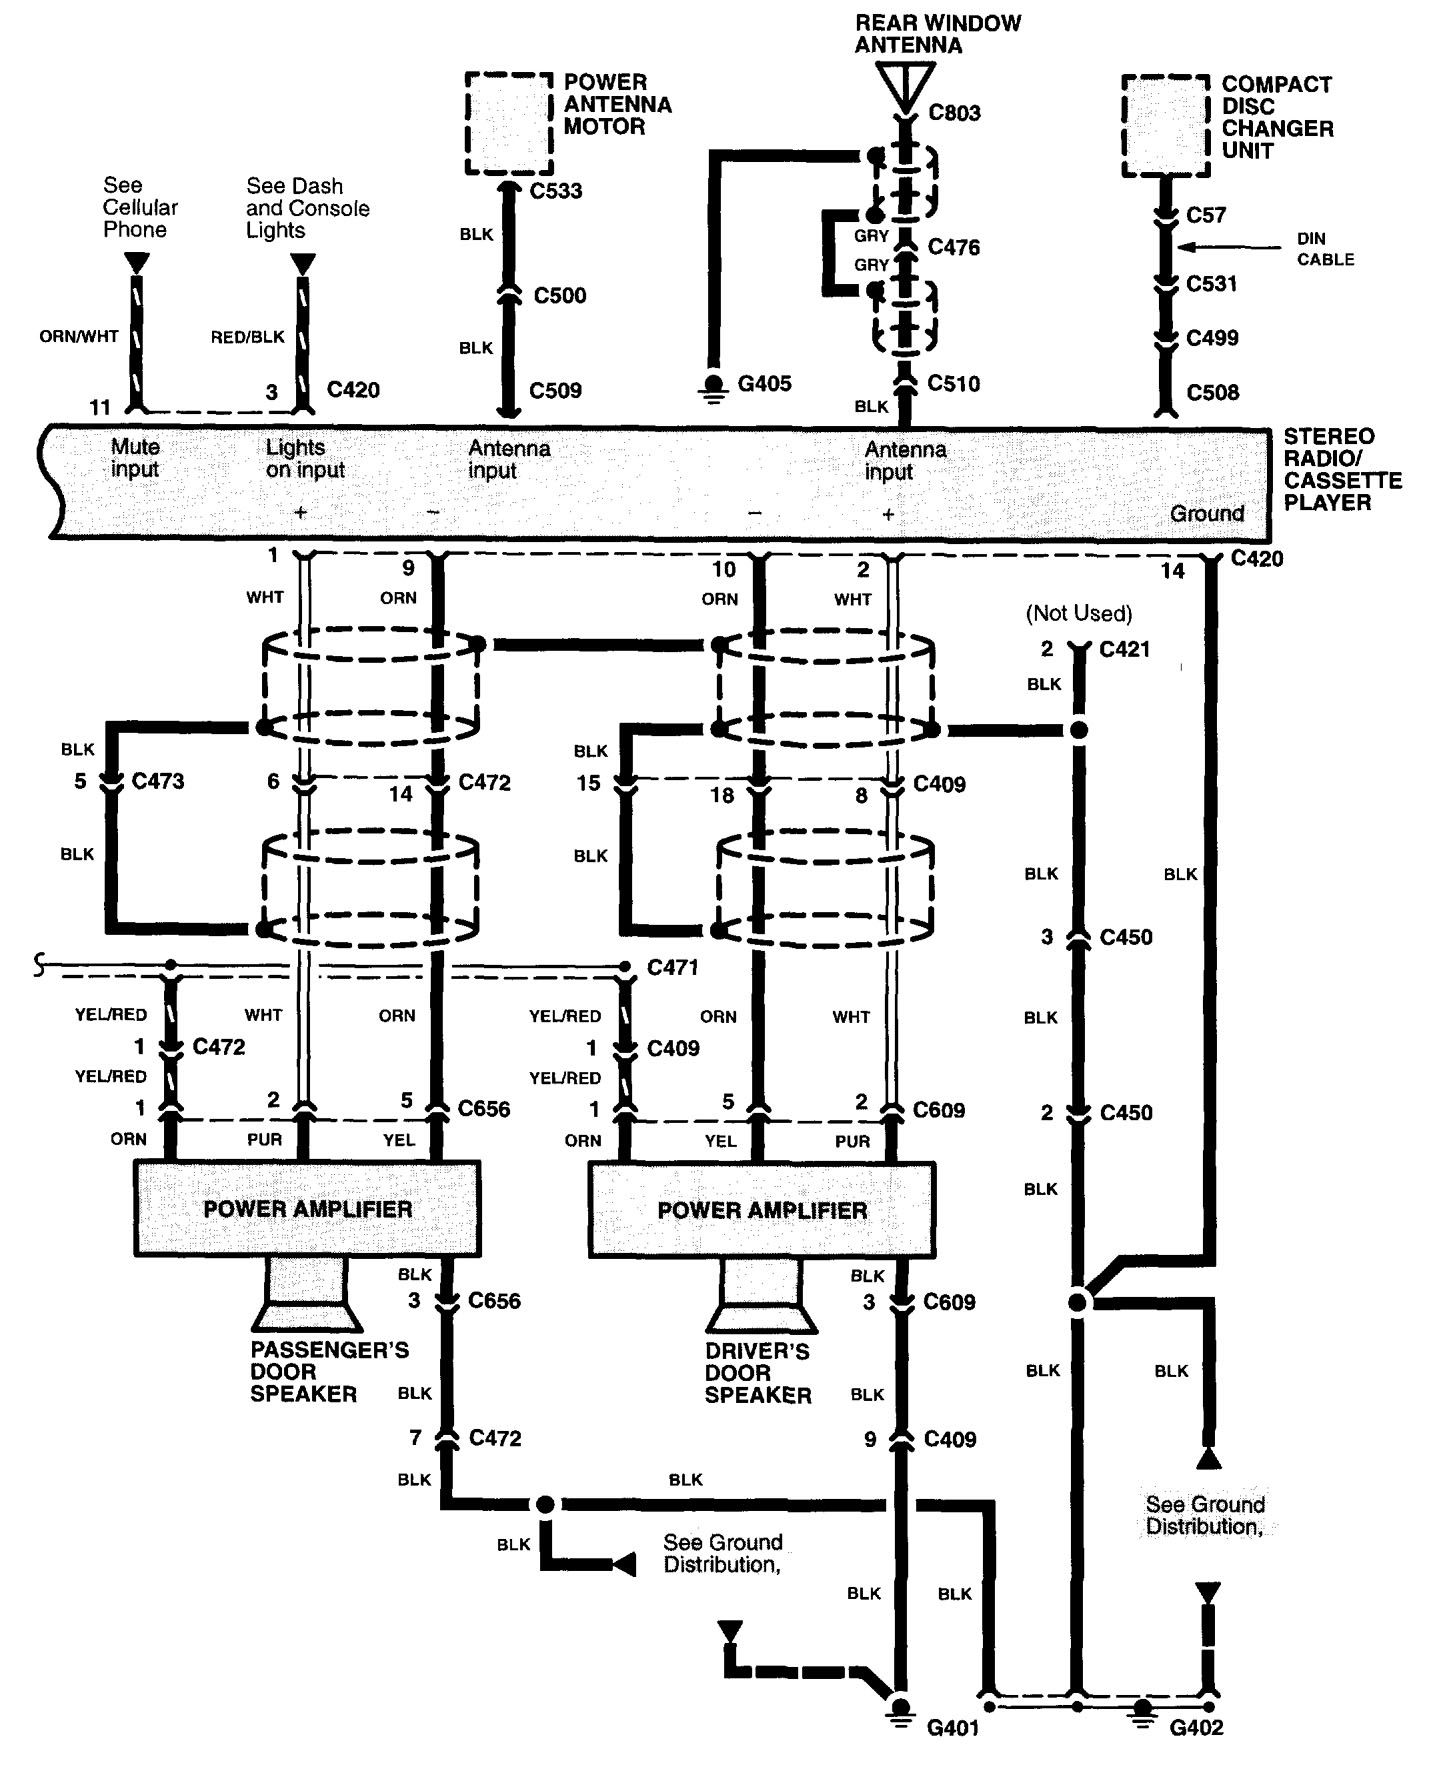 Acura Integra Wiring Diagram Horn in addition Volvo V also Volvo Volvotips as well B F C as well Volvo Fuse Box Diagram. on system wiring diagram volvo 1995 960